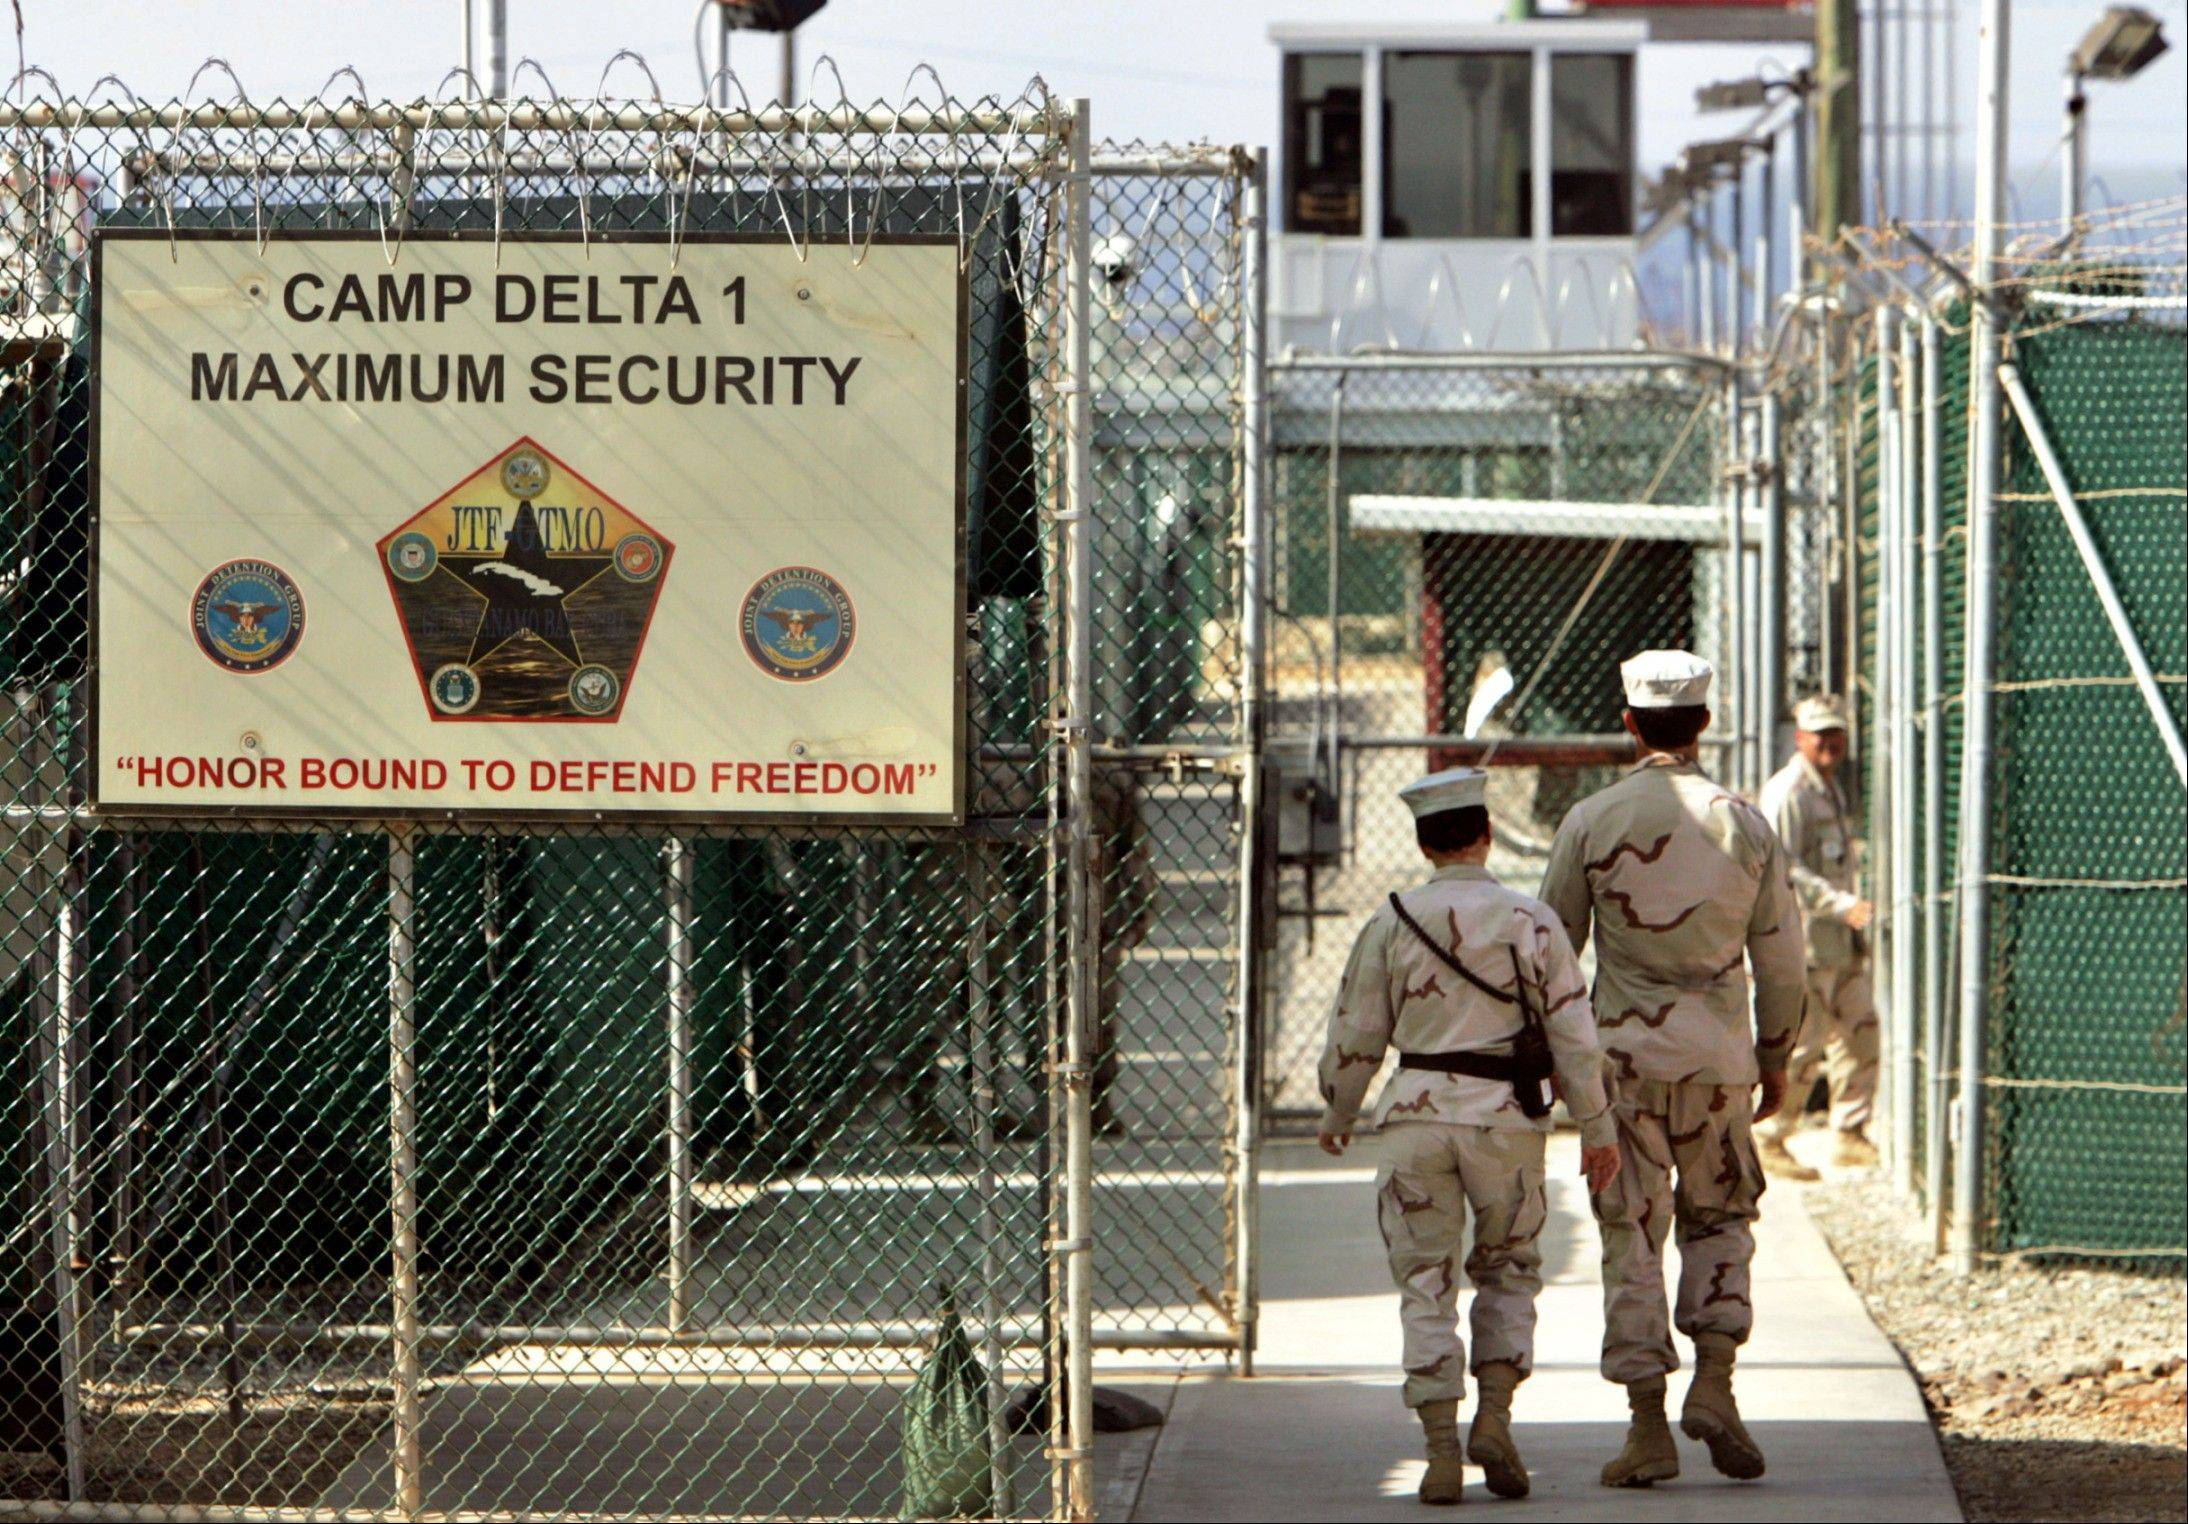 In this June 27, 2006 file photo, reviewed by a U.S. Department of Defense official, U.S. military guards walk within Camp Delta military-run prison, at the Guantanamo Bay U.S. Naval Base, Cuba. Al-Qaida's leader claims that the terror network will spare no effort to free prisoners held at the US military-run detention center in Cuba.